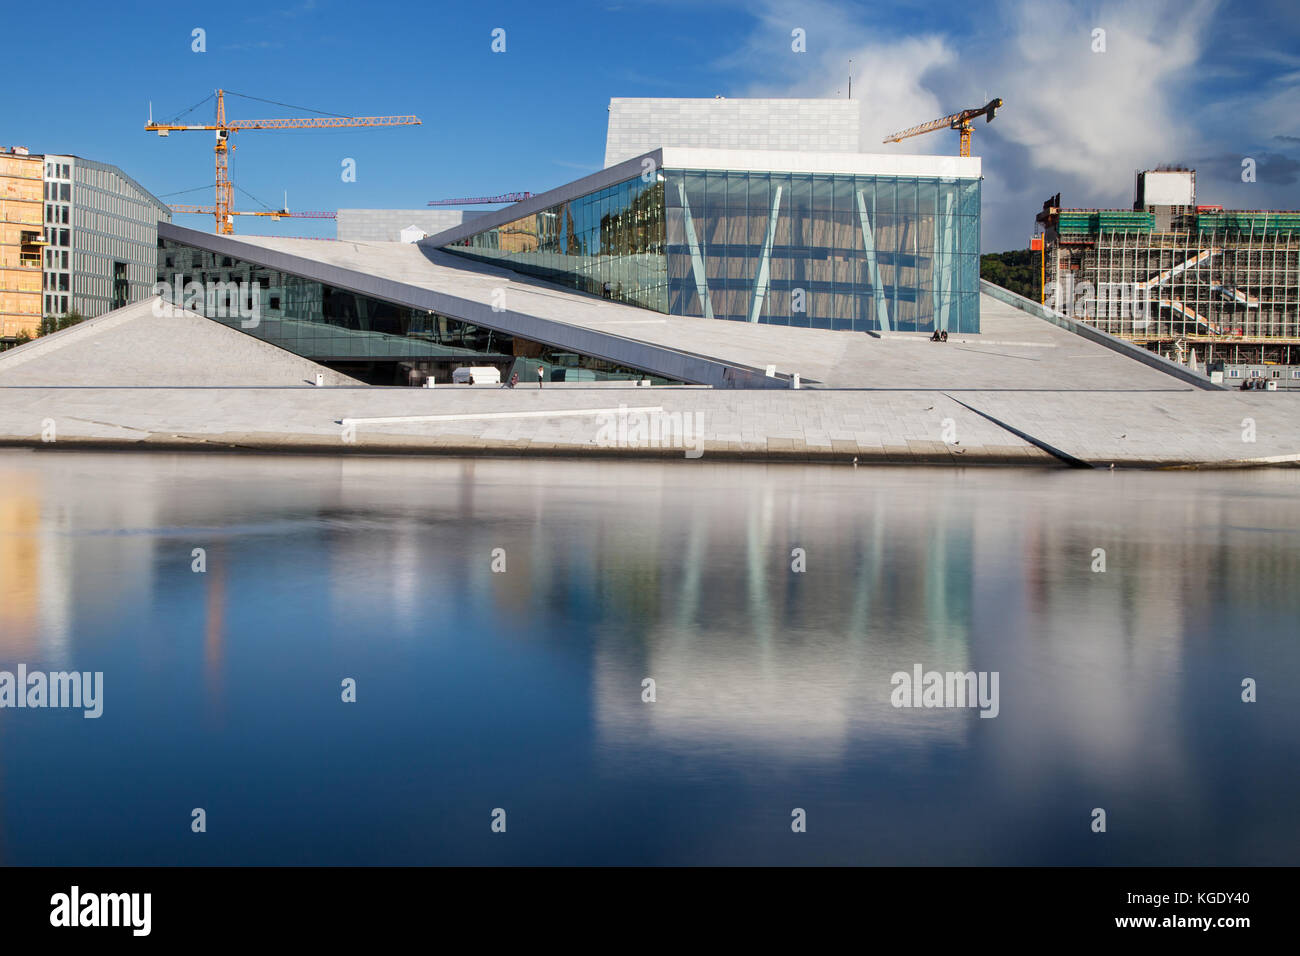 Opera House of Oslo, Norway. Situated in the Bjorvika neighborhood, at the head of the Oslofjord, it was designed - Stock Image